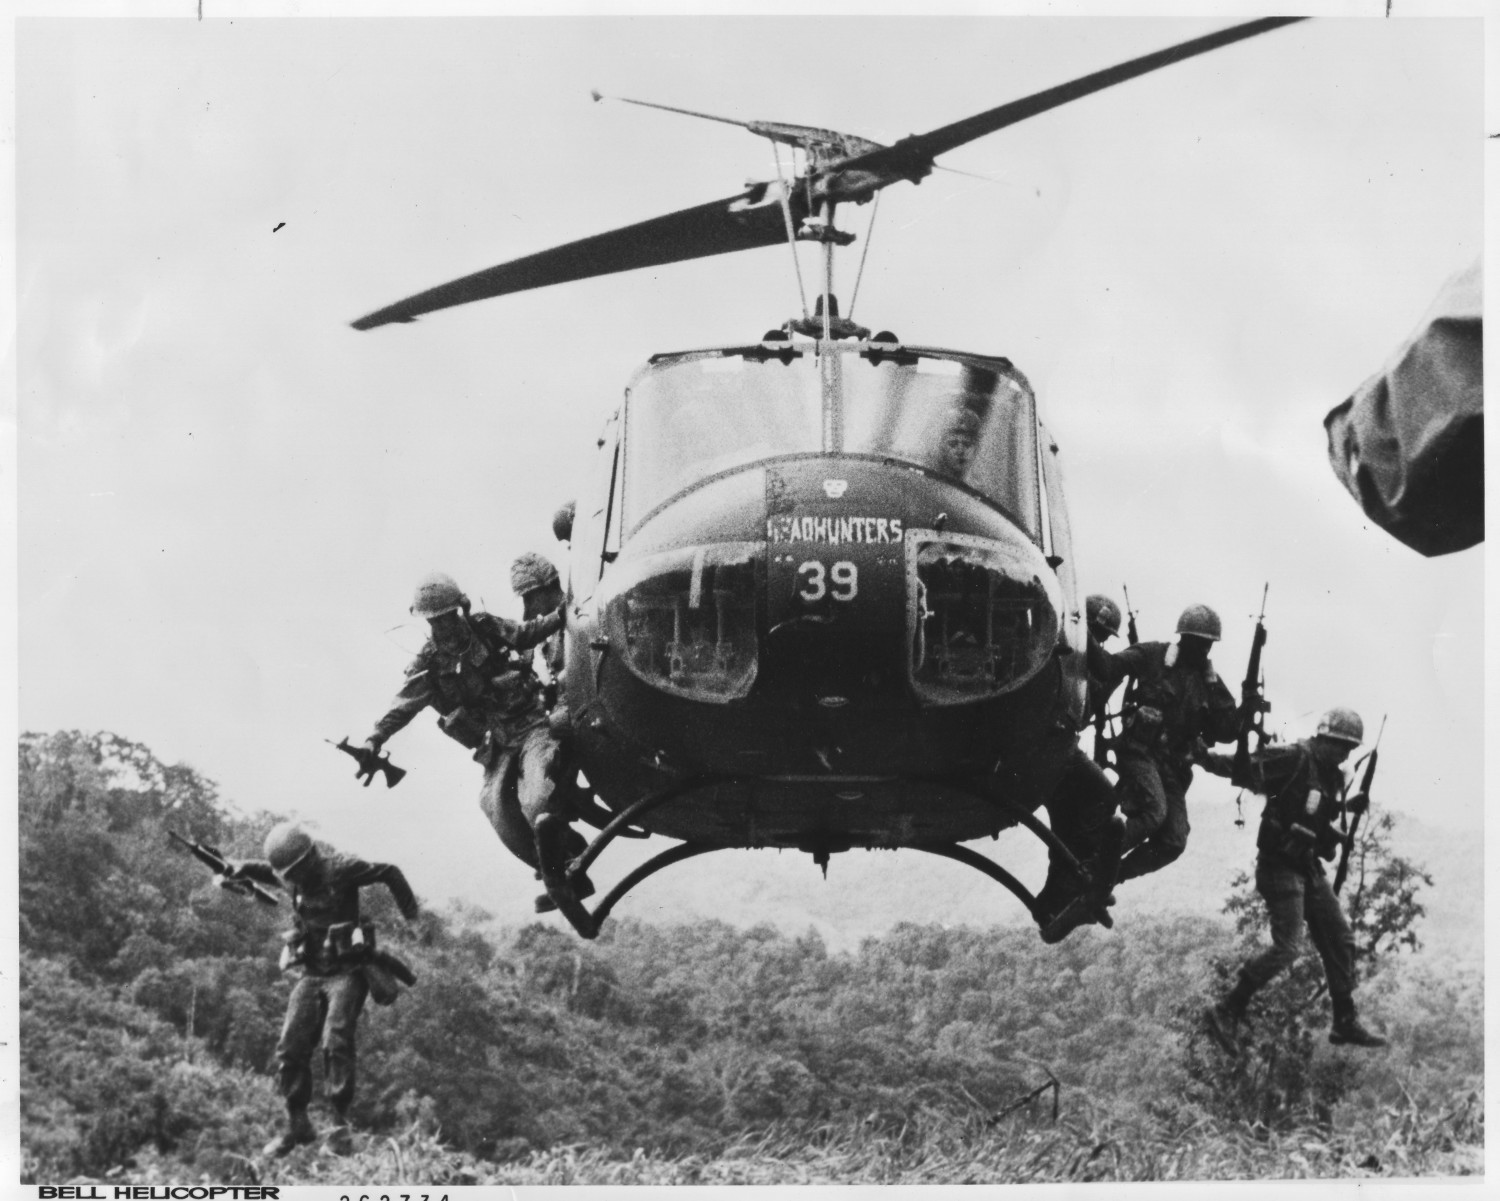 Soldiers Jumping Out Of A Helicopter In Combat